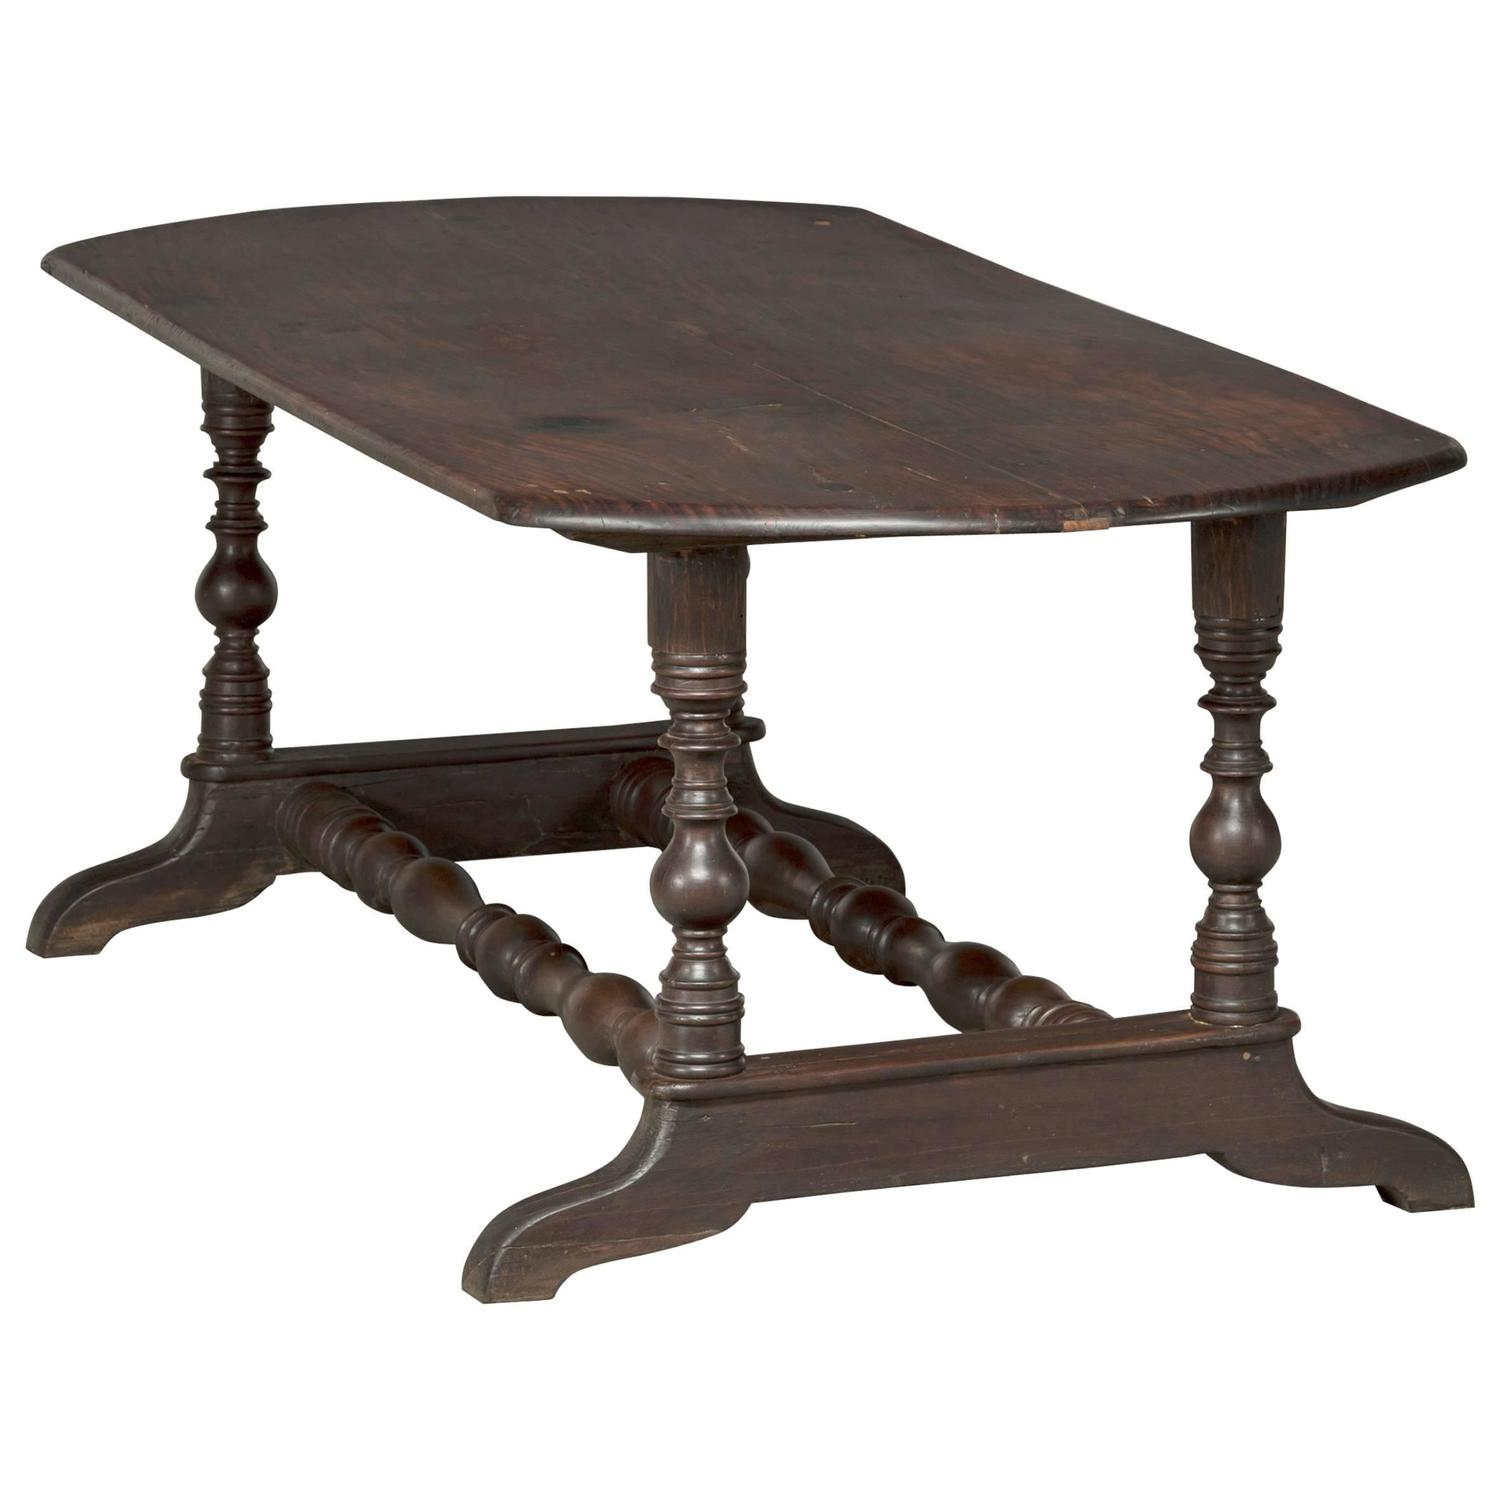 Antique Narra Sala Set Dining Table For Sale In Philippines Joy Studio Design